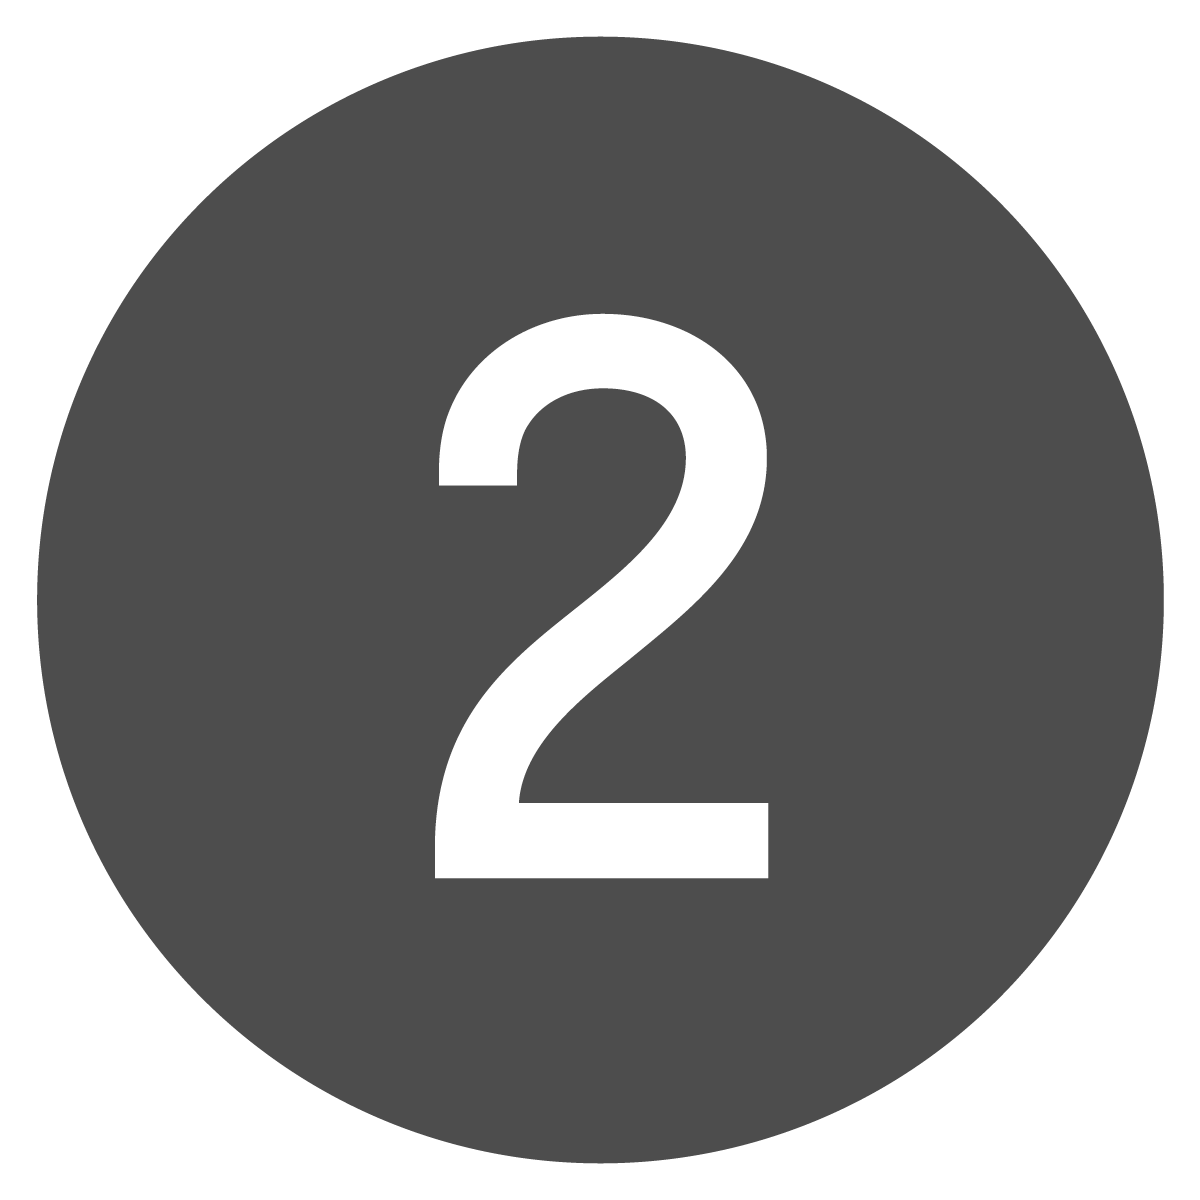 Circle button of the number two.